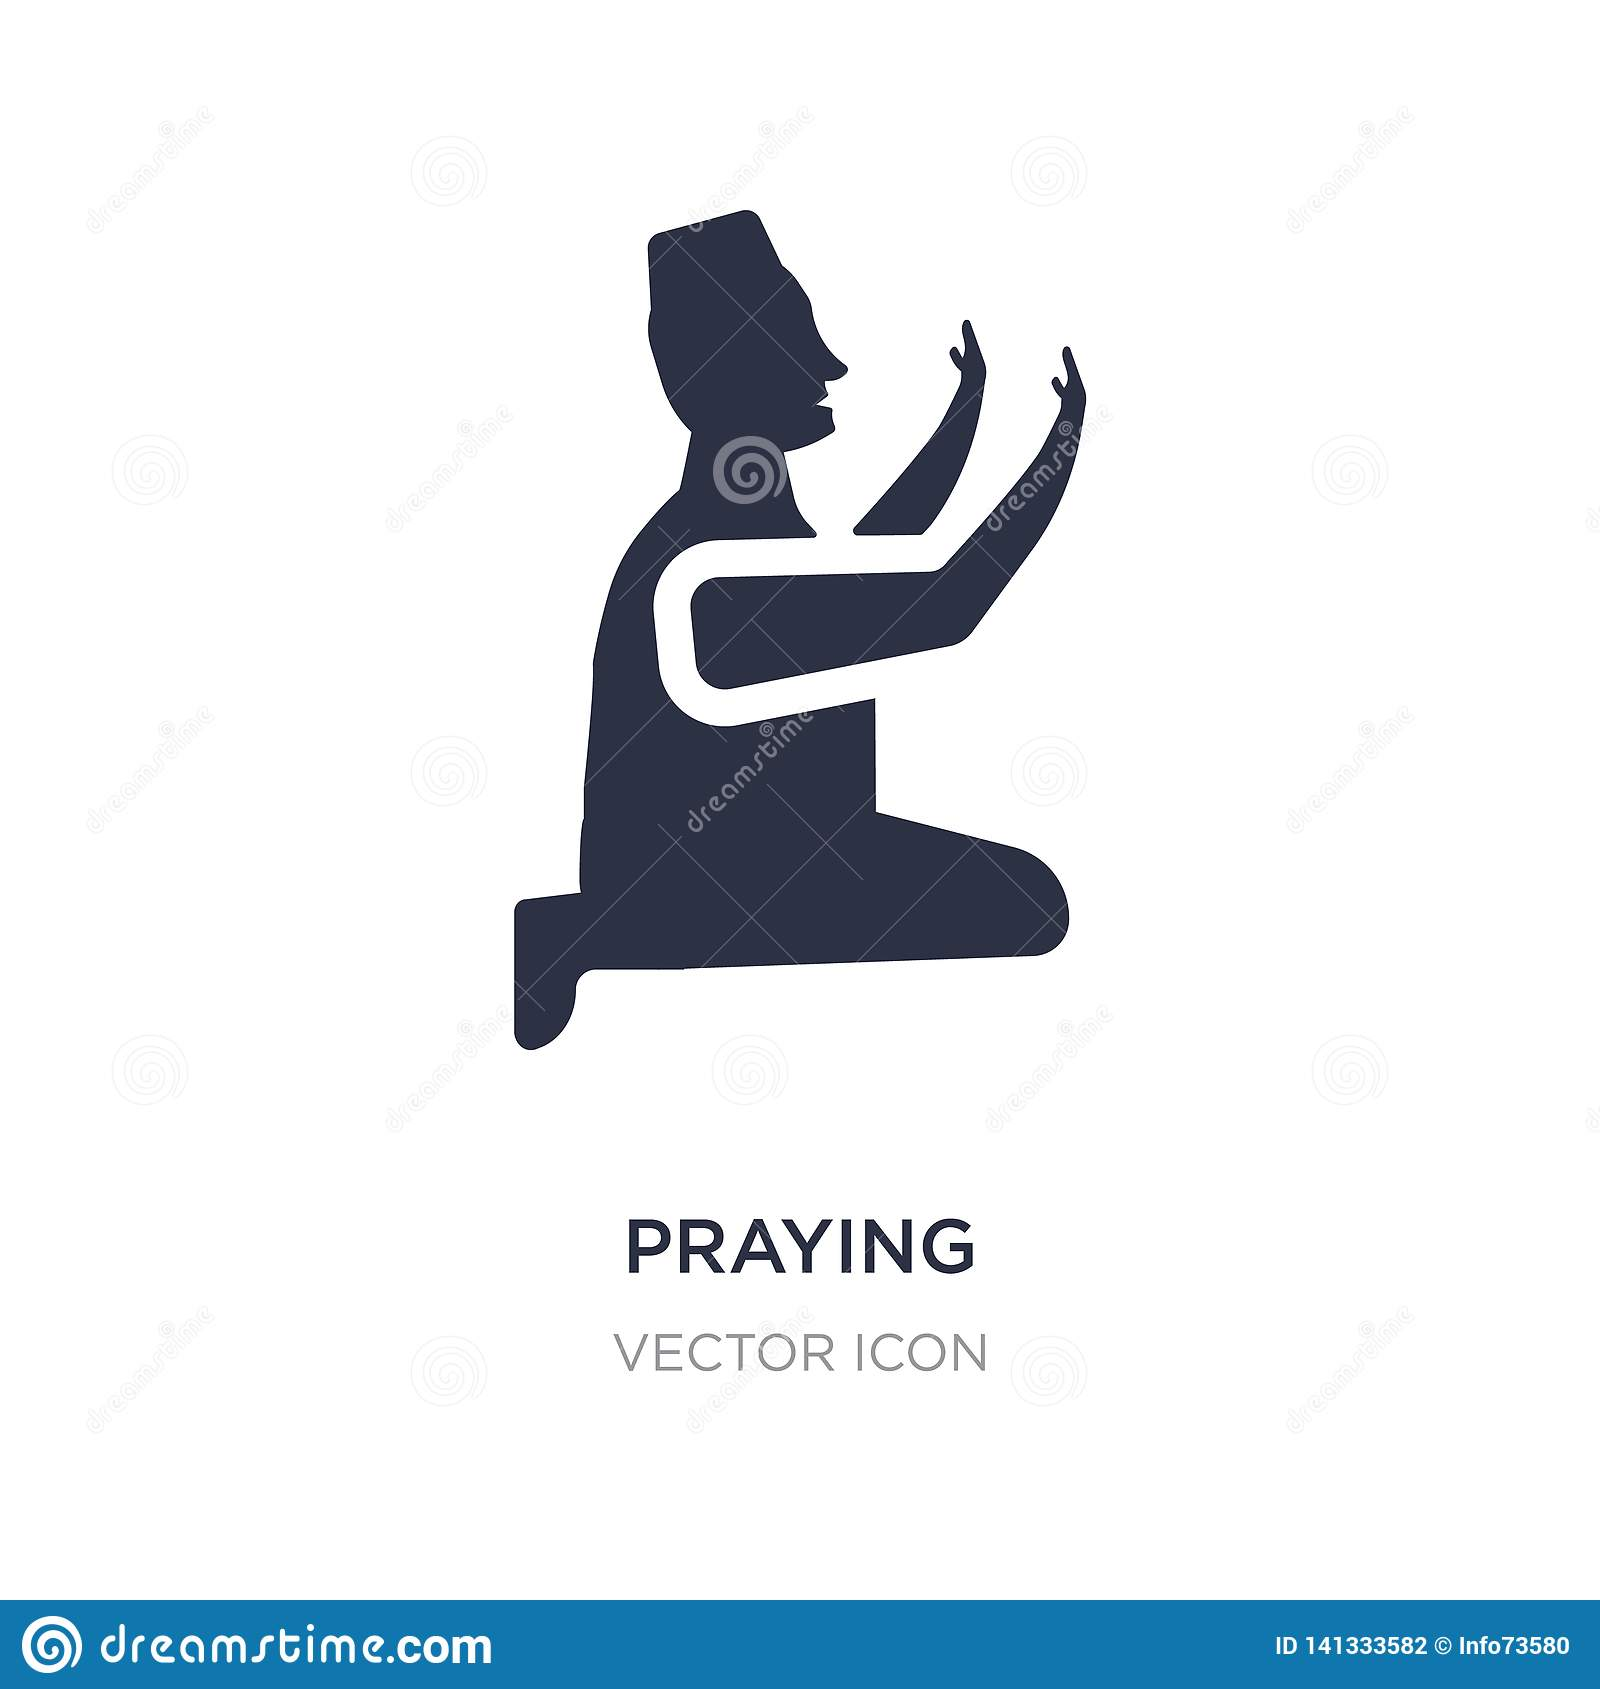 praying icon on white background. Simple element illustration from Charity concept